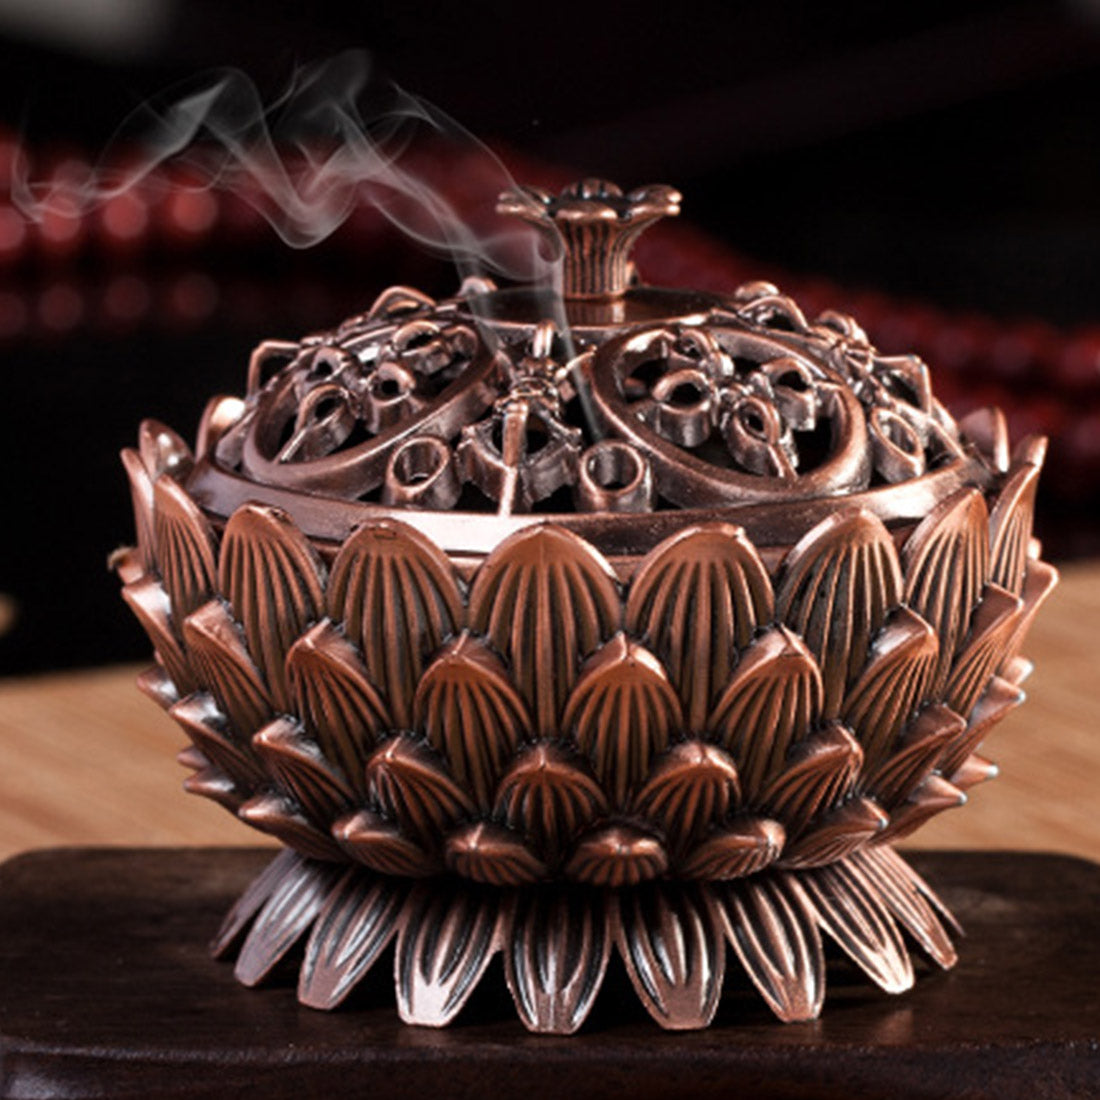 Copper Lotus Incense Burner